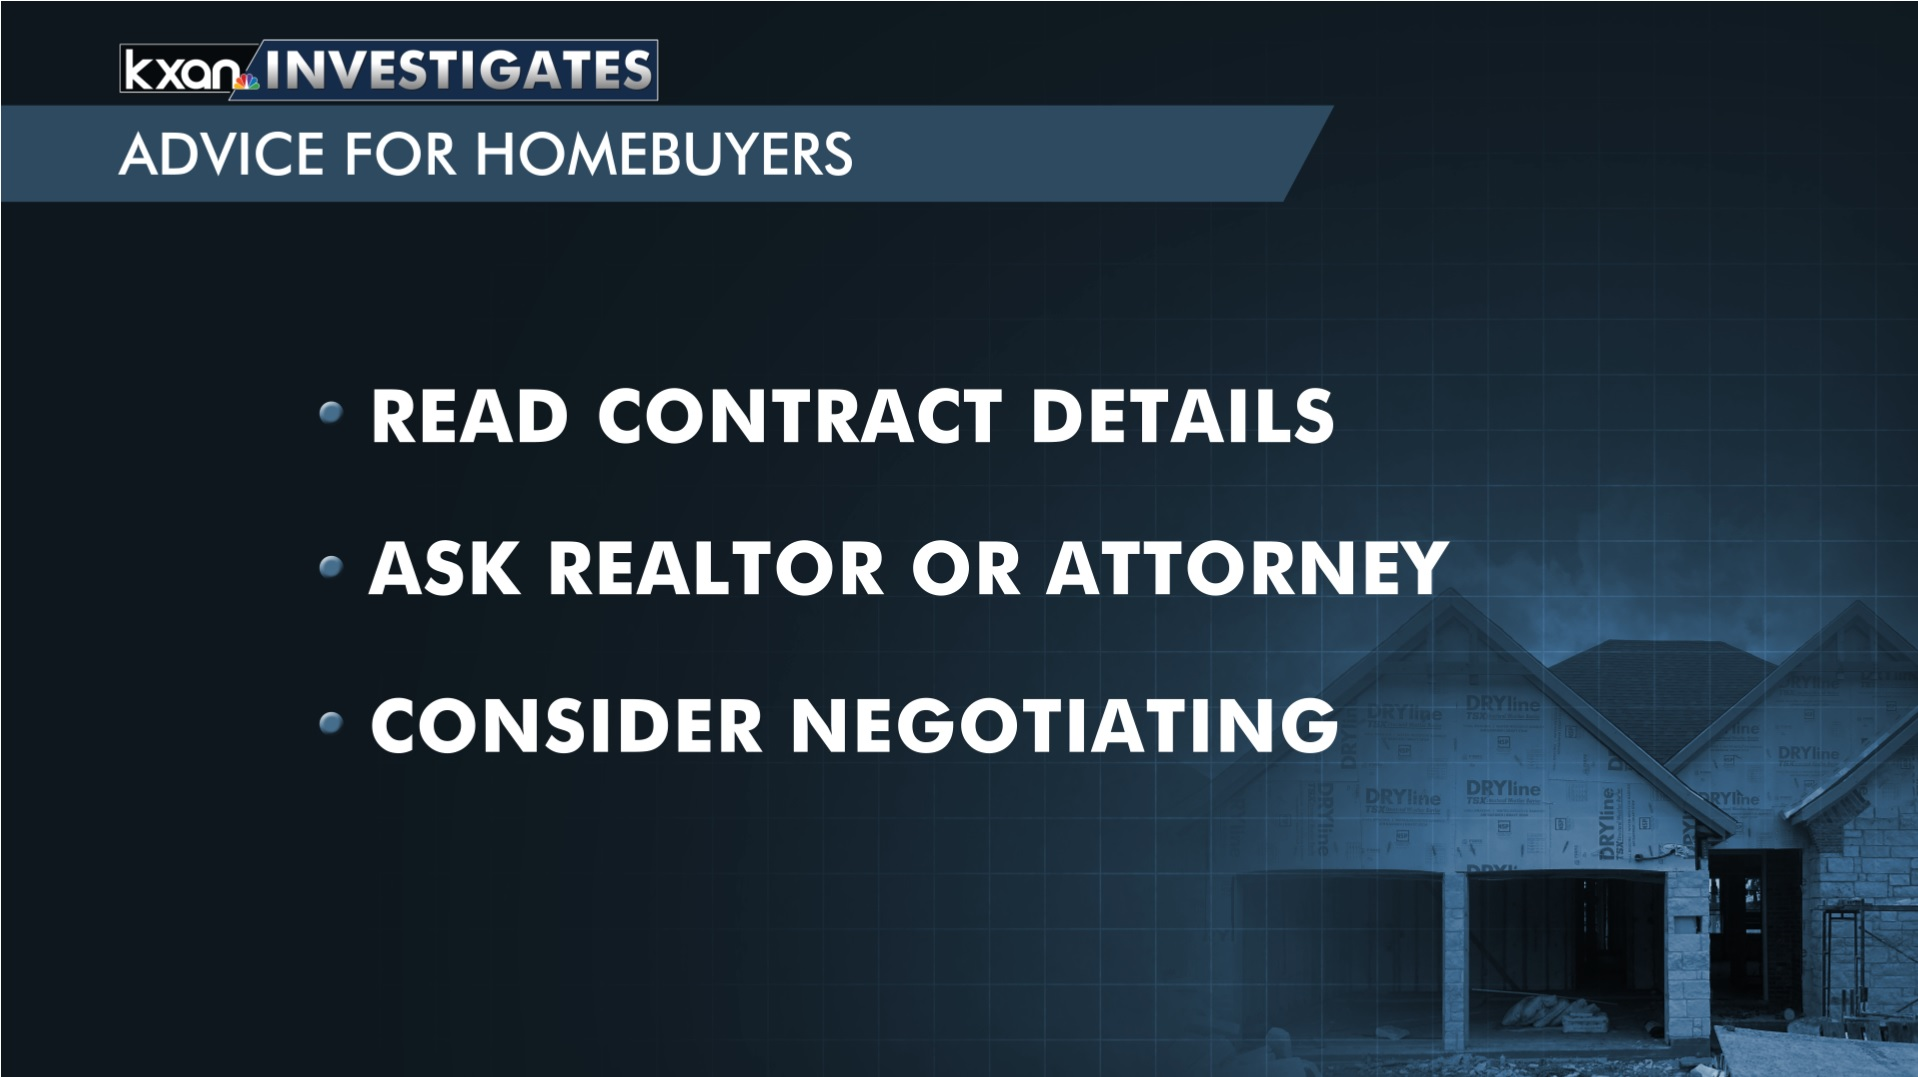 The Austin Board of Realtors shares this advice for homebuyers: Read contract details, ask realtor or attorney, consider negotiating